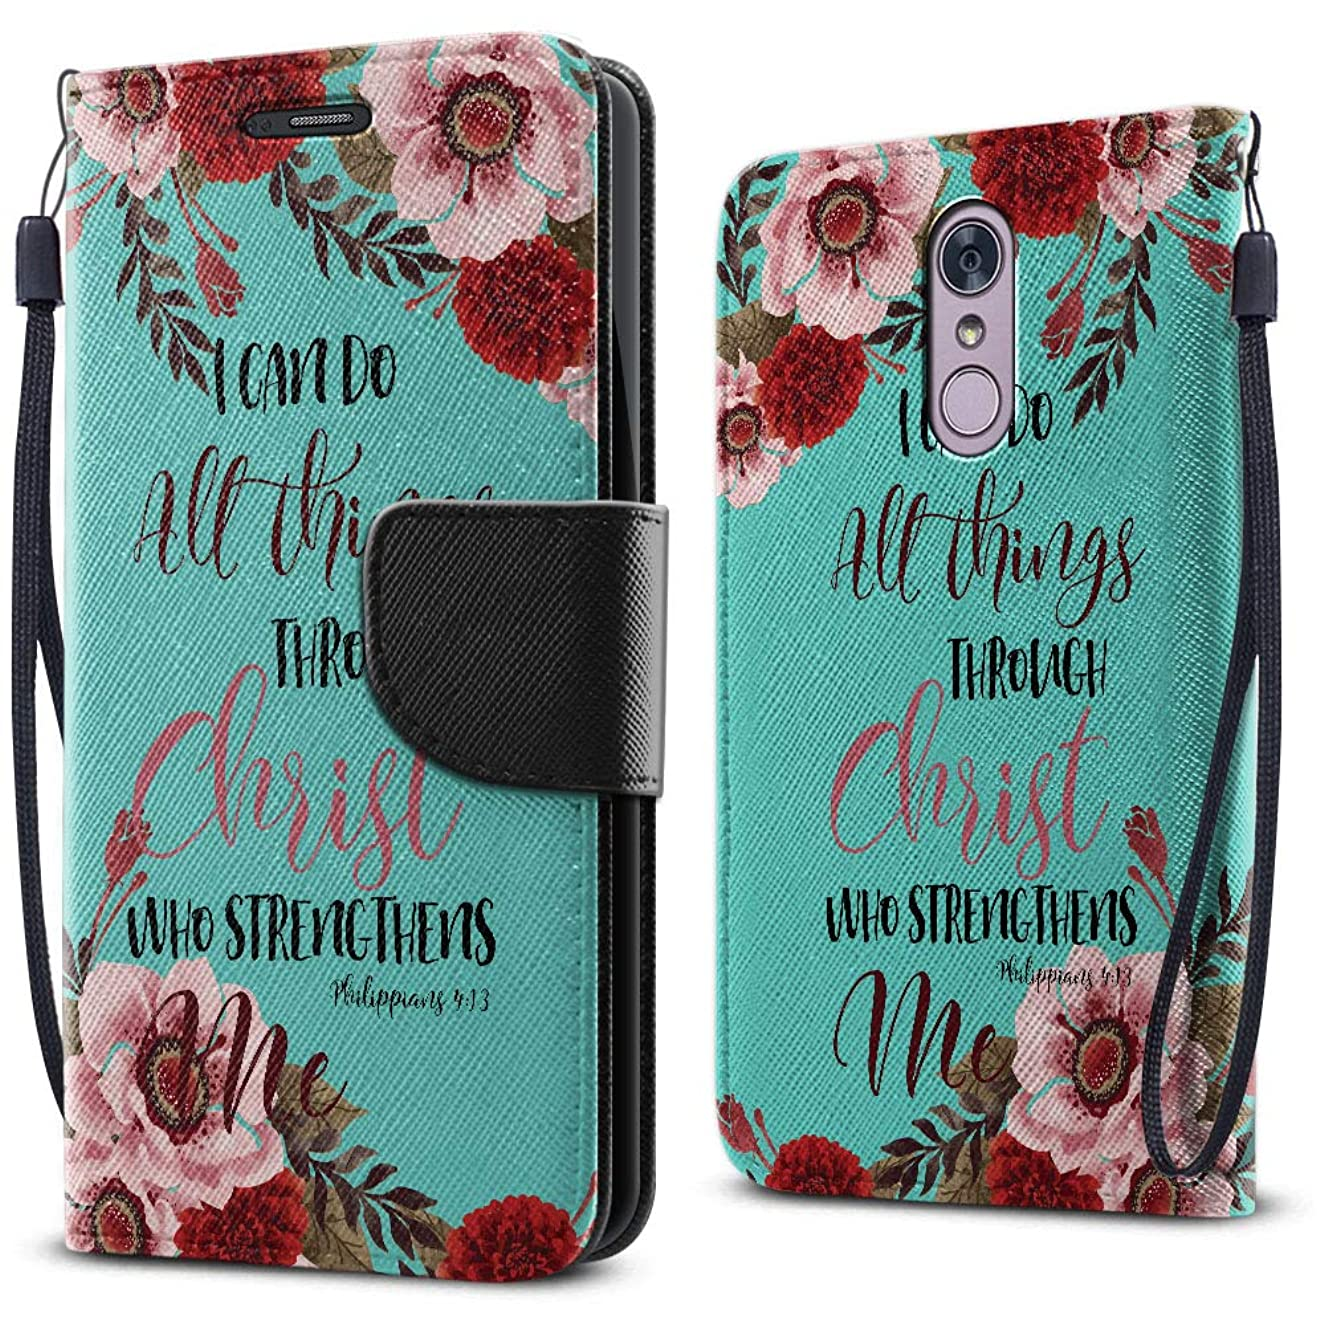 FINCIBO Case Compatible with LG Stylo 4, Fashionable Flap Wallet Pouch Cover Case + Card Holder Kickstand for LG Stylo 4 - Christian Bible Verses Philippians 4:13